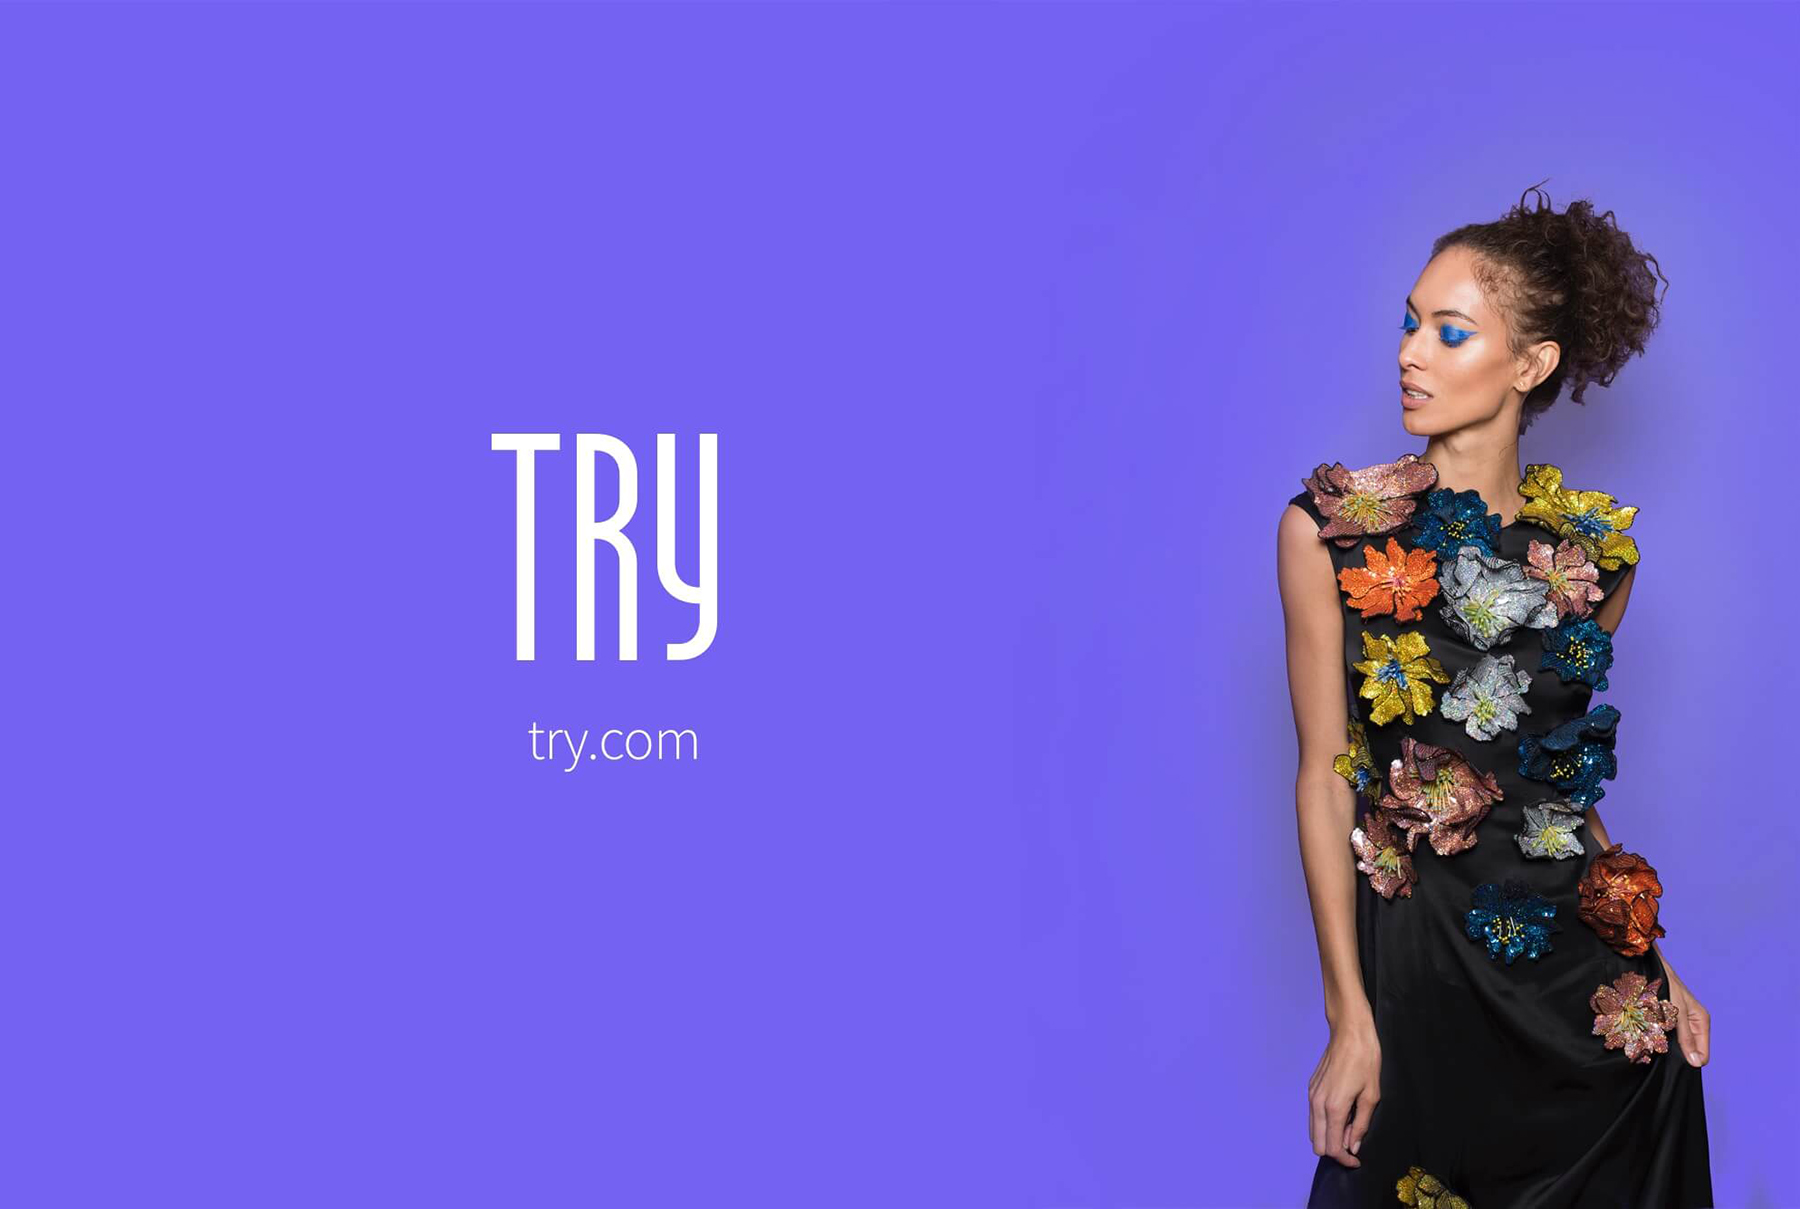 Try.com promo with model in flower appliqué dress